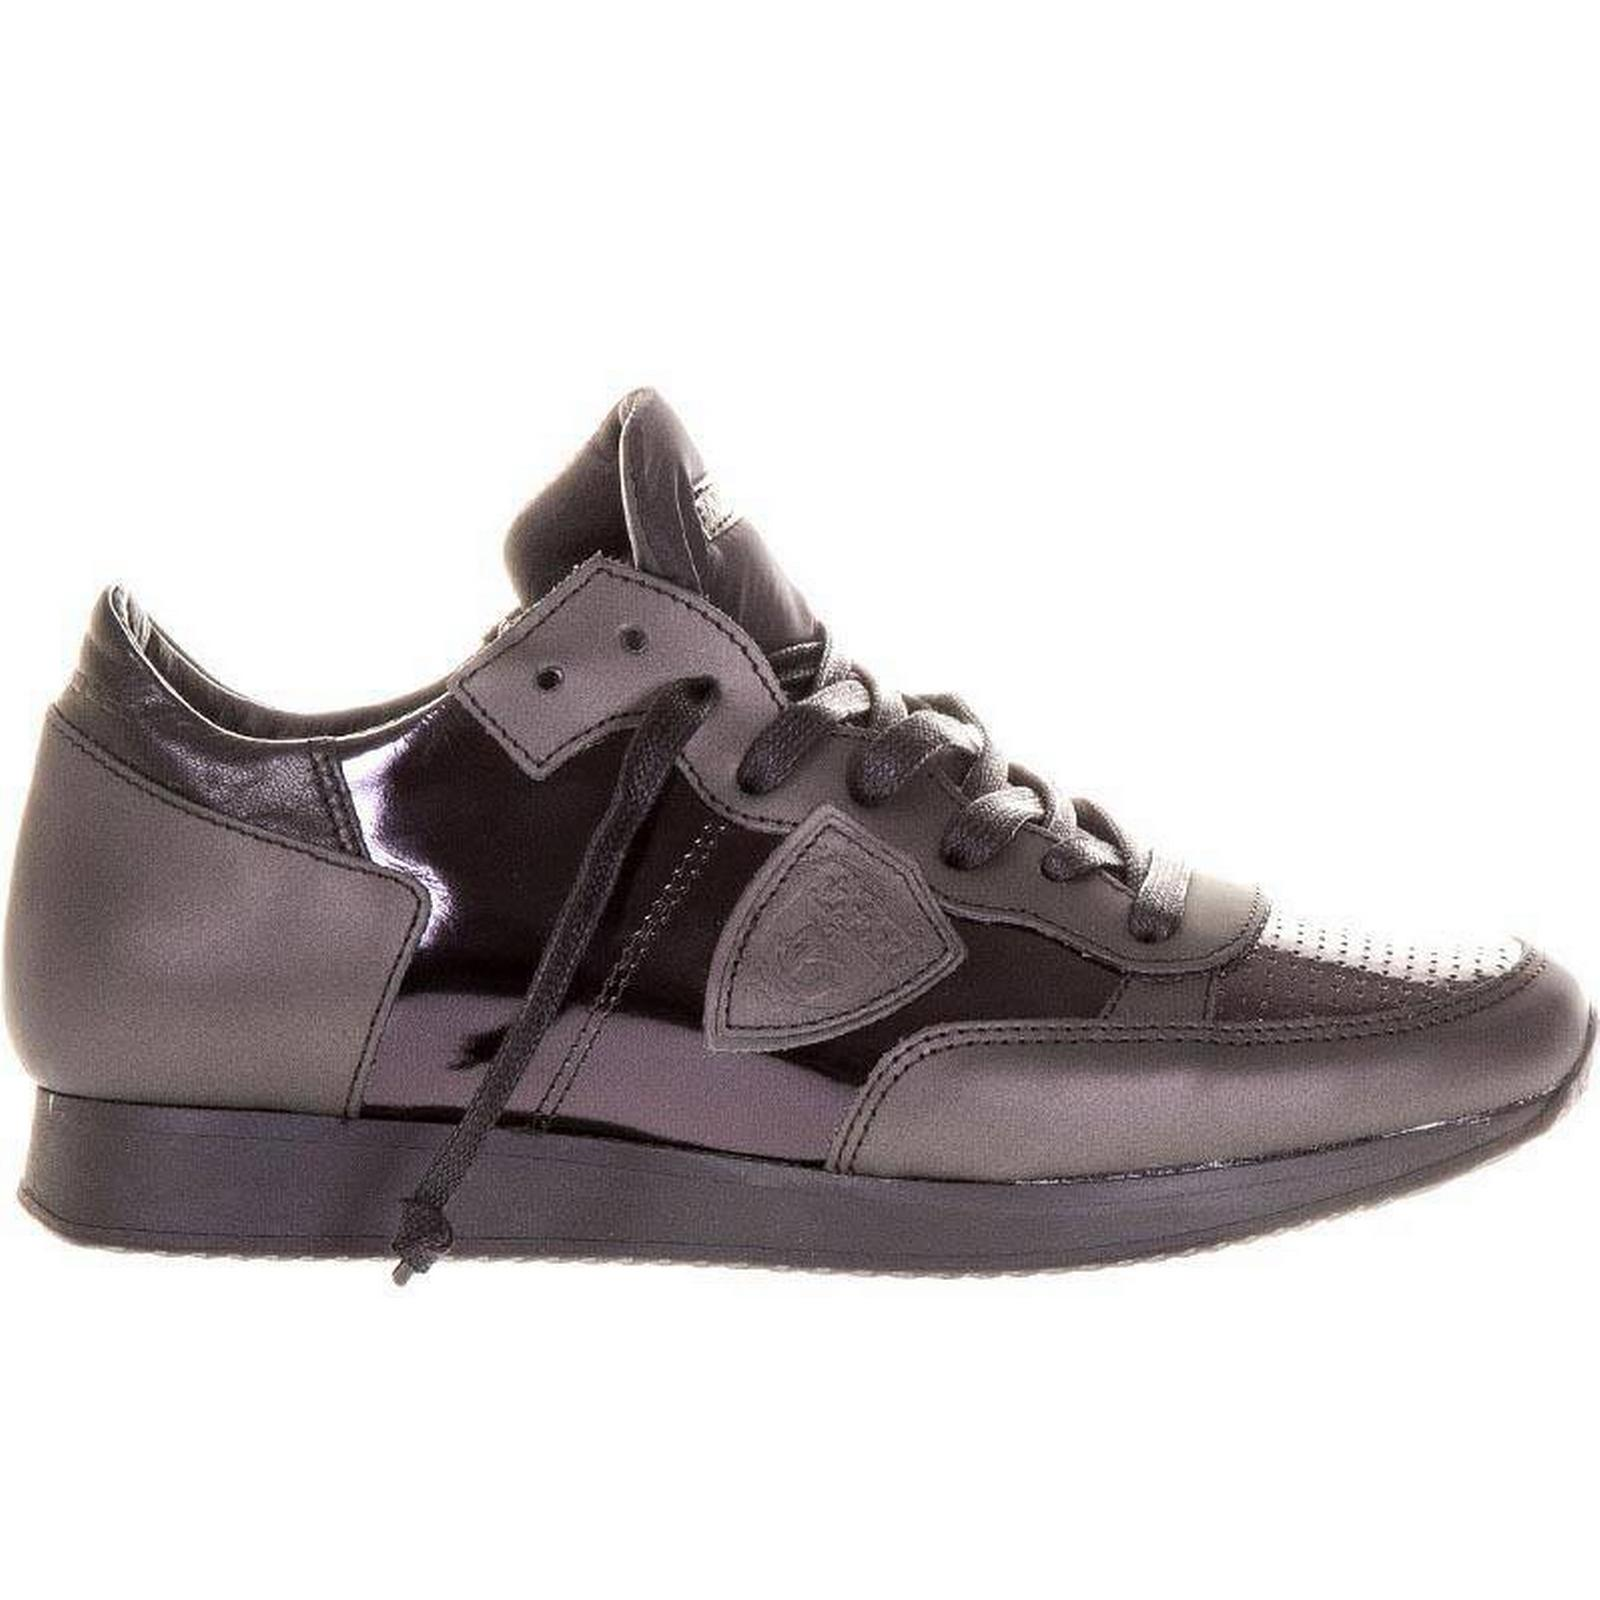 Philippe Sneakers Model tropez  Leather Sneakers Philippe 55c71c